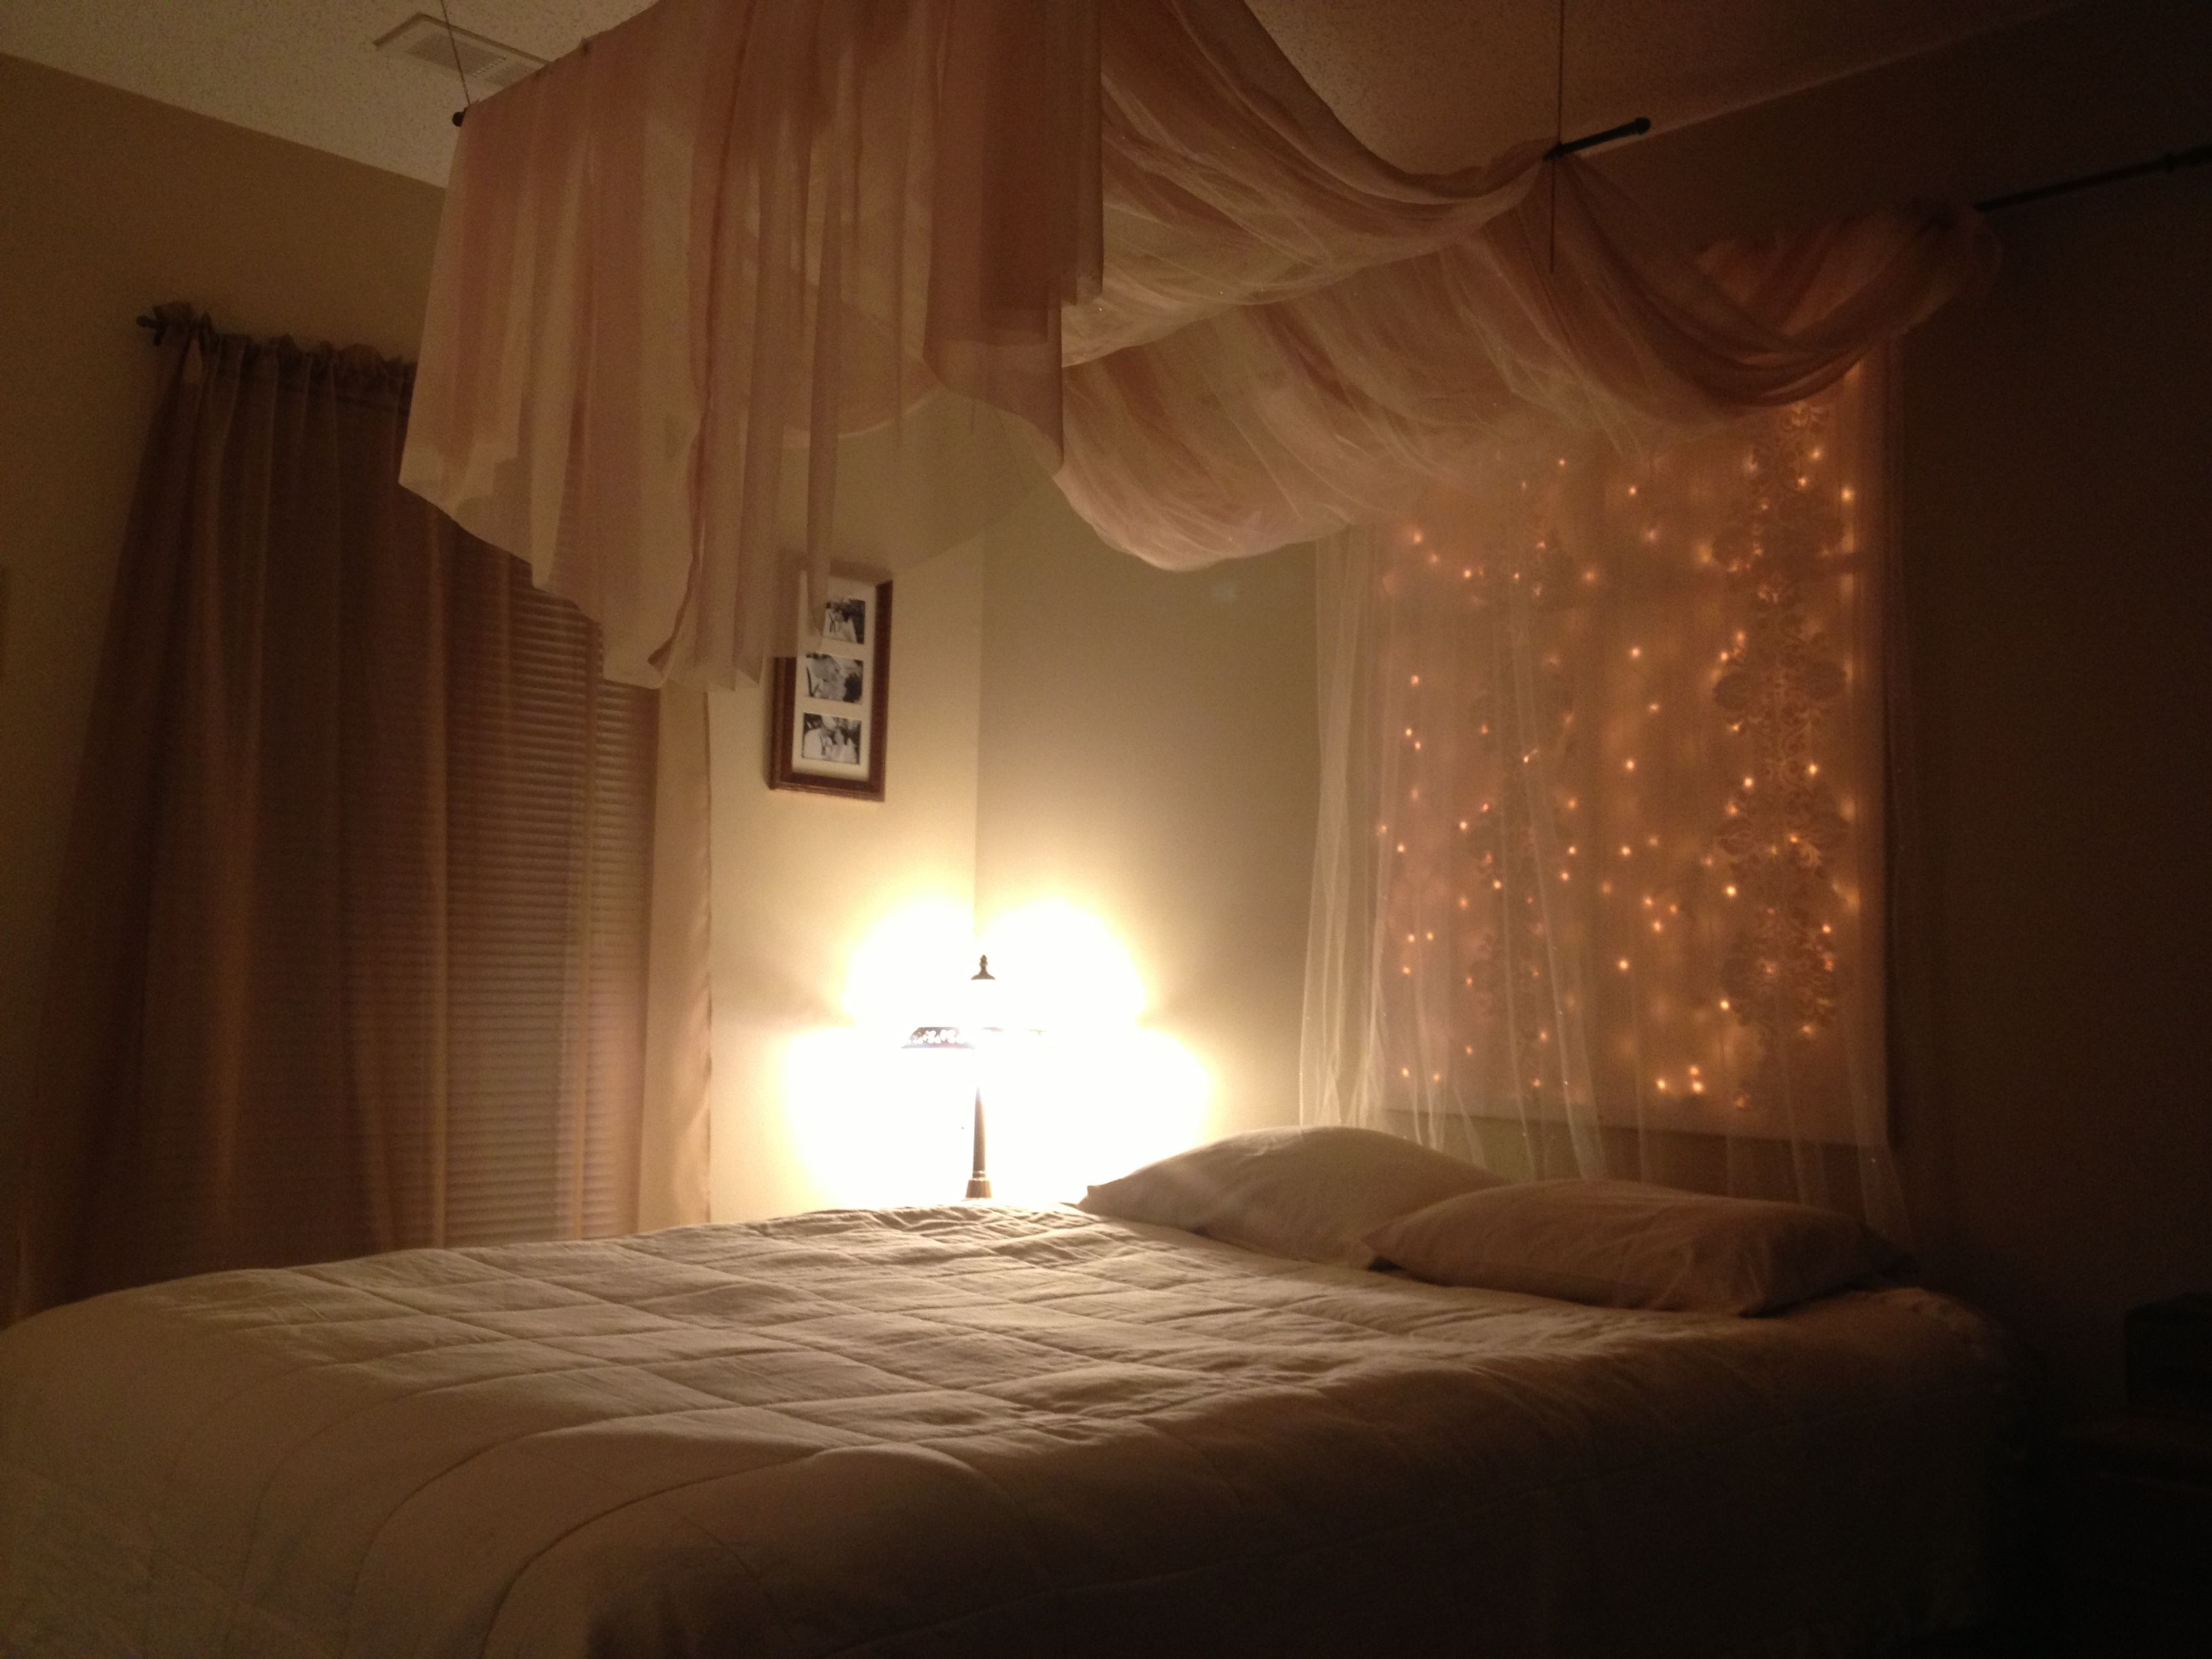 Curtains On Wall Behind Bed Canopy With Lights Something Like This Might Be Good To